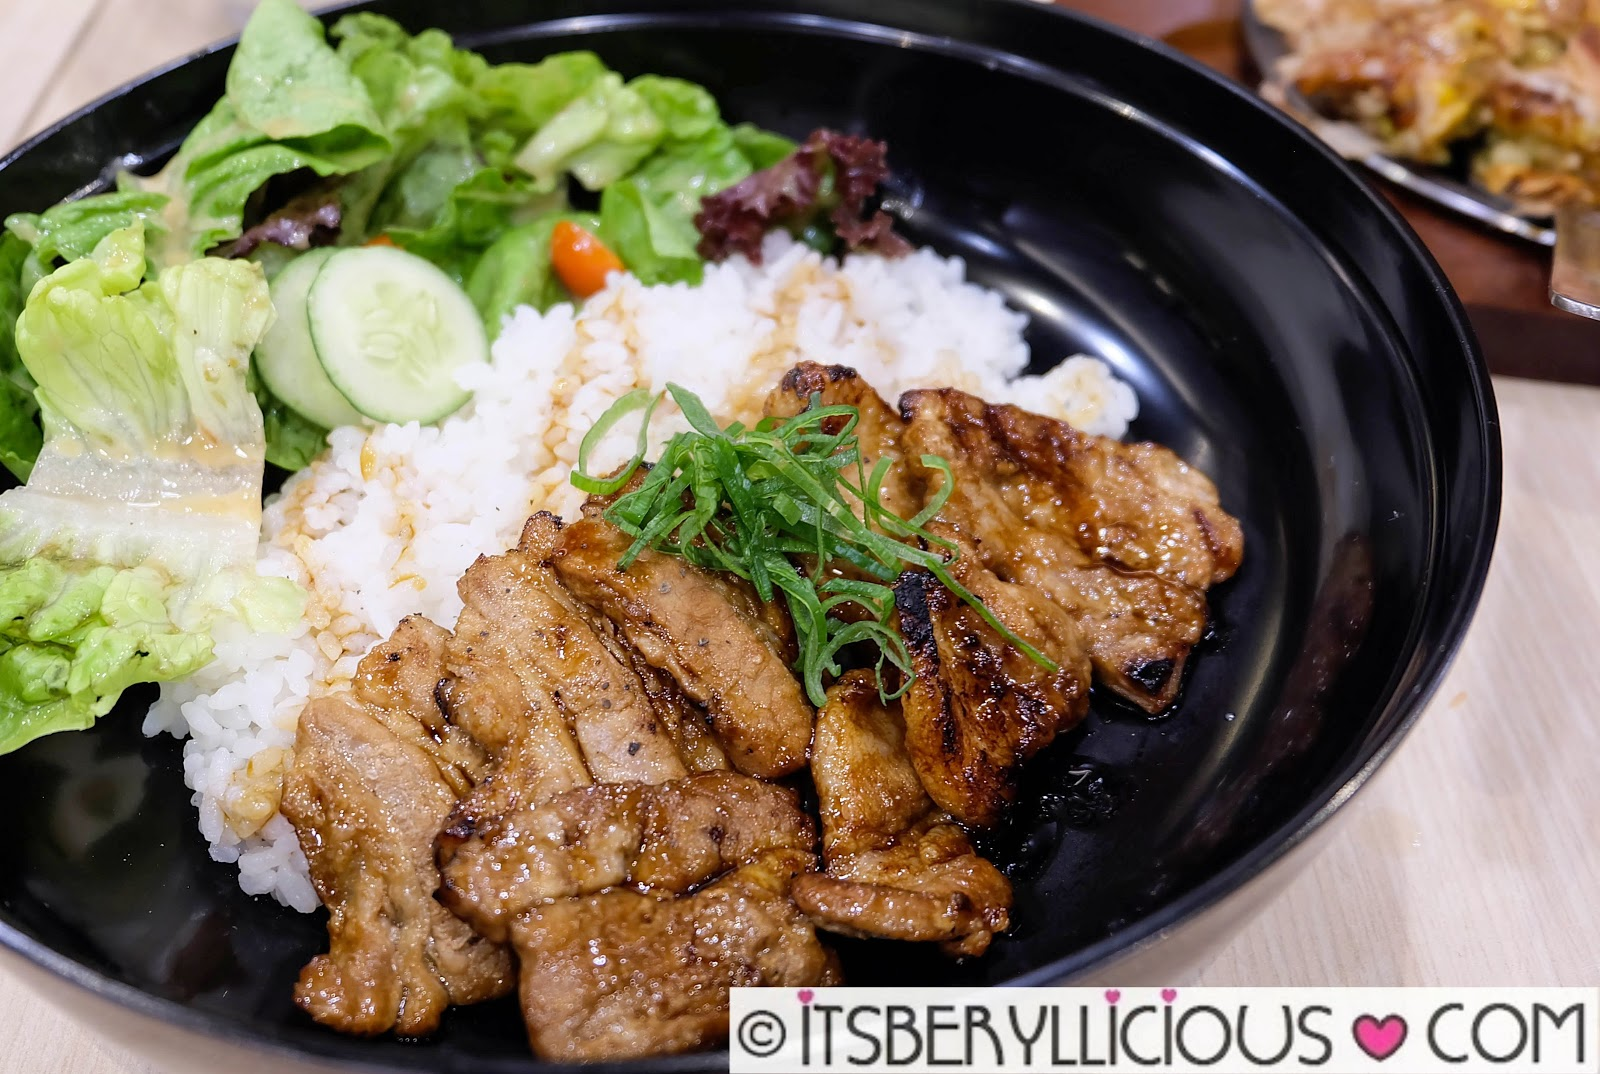 Botejyu authentic japanese cuisine opens third branch in for Authentic japanese cuisine